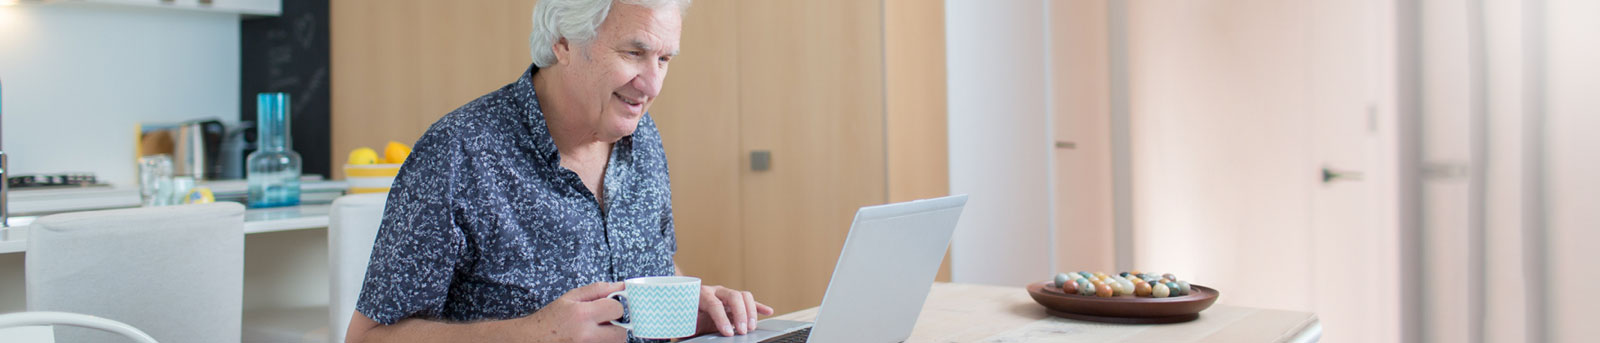 Older man looking at laptop in kitchen and holding mug